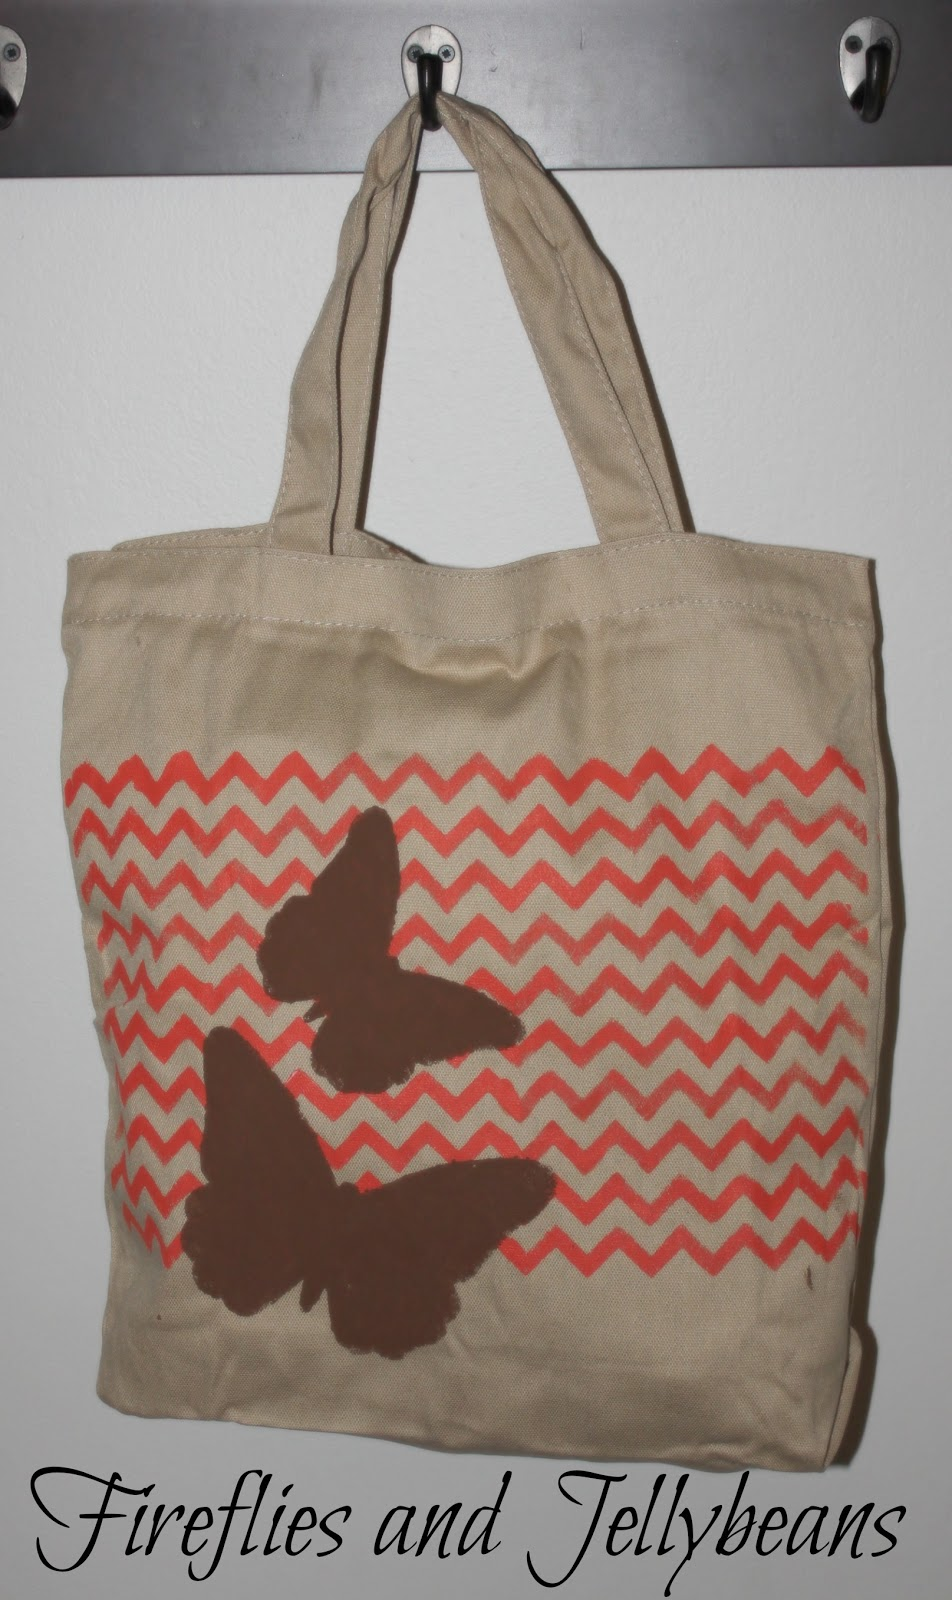 Fireflies and Jellybeans Stencil Tote Bags